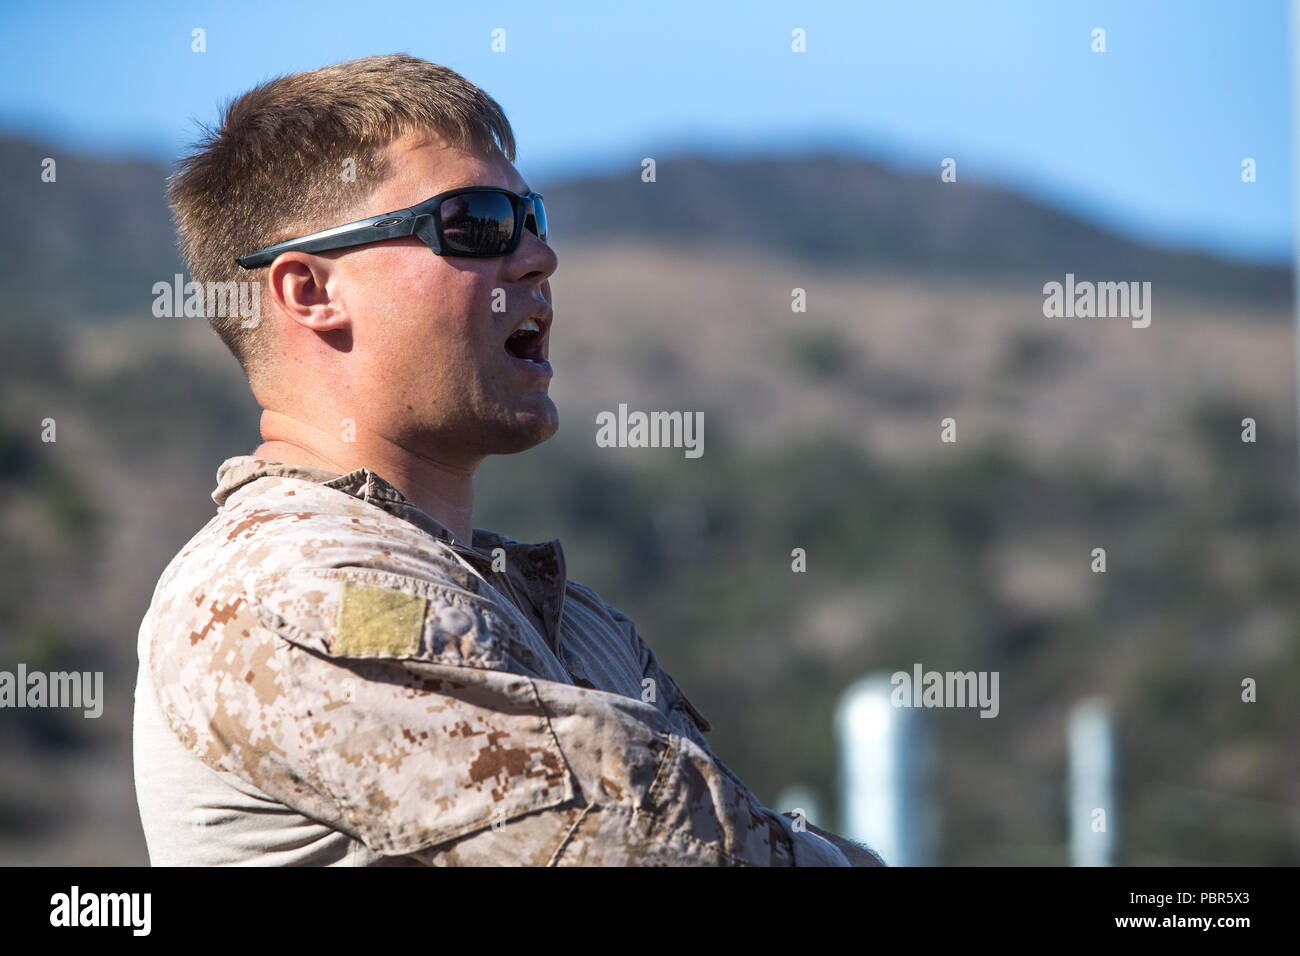 U.S. Marine Corps Staff Sgt. Daniel Ragan, unit leader, Light Armored Reconnaissance Training Company, Advanced Infantry Training Battalion, gives instructions to class 5-18 during a training exercise at Marine Corps Base Camp Pendleton, California, July 24, 2018. Ragan conducted a gear check and taught class 5-18 the importance of using hand signals while guiding Light Armored Vehicles. (U.S. Marine Corps Photo by Pfc. Stephen Beard) - Stock Image